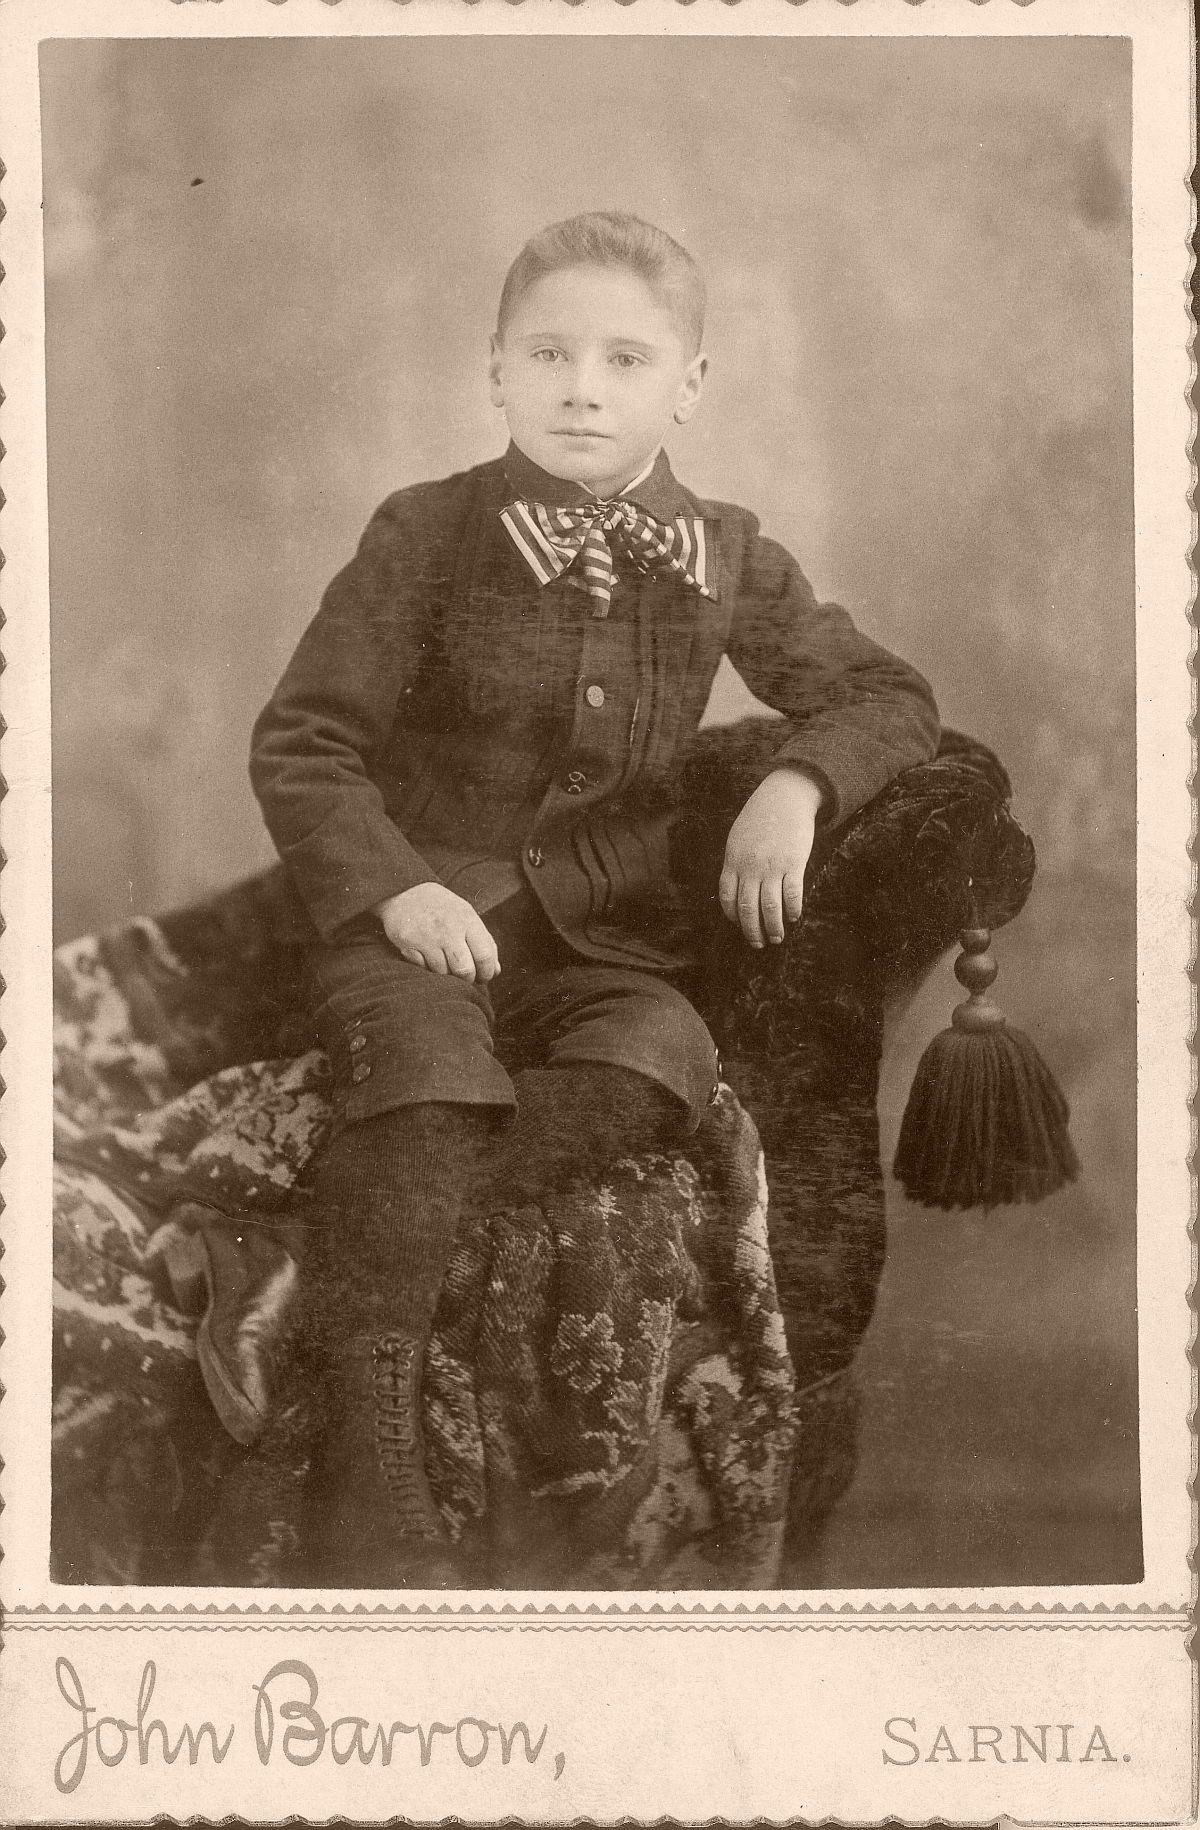 cabinet-cards-1870s-to-1880s-vintage-19th-century-victorian-era-10